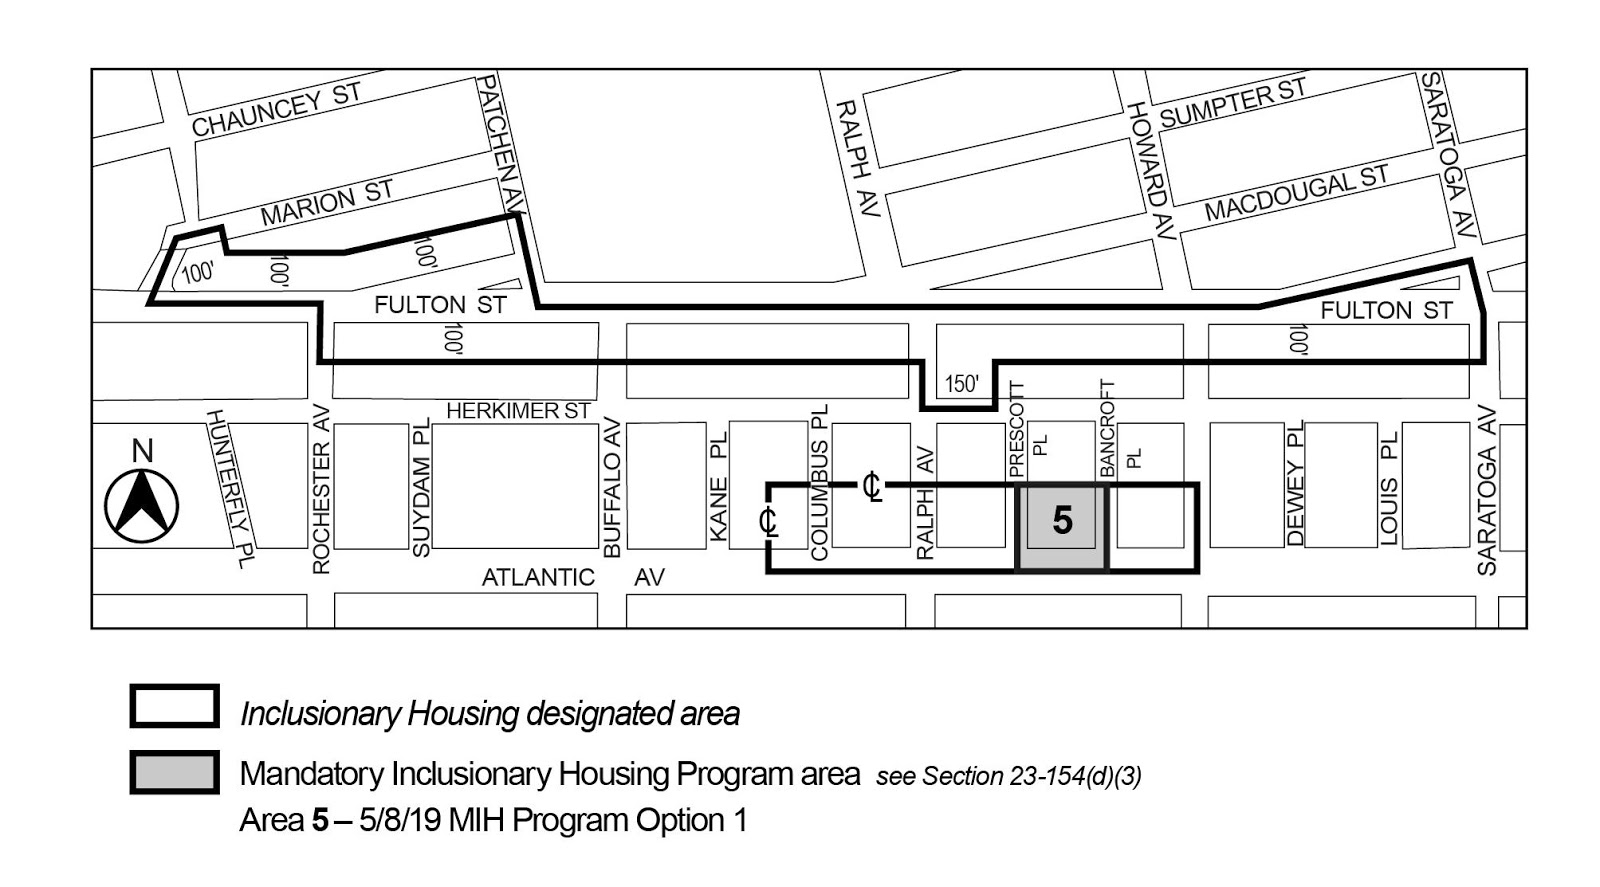 Zoning Resolutions F-Inclusionary Housing Designated Areas and Mandatory Inclusionary Housing Areas_2.49